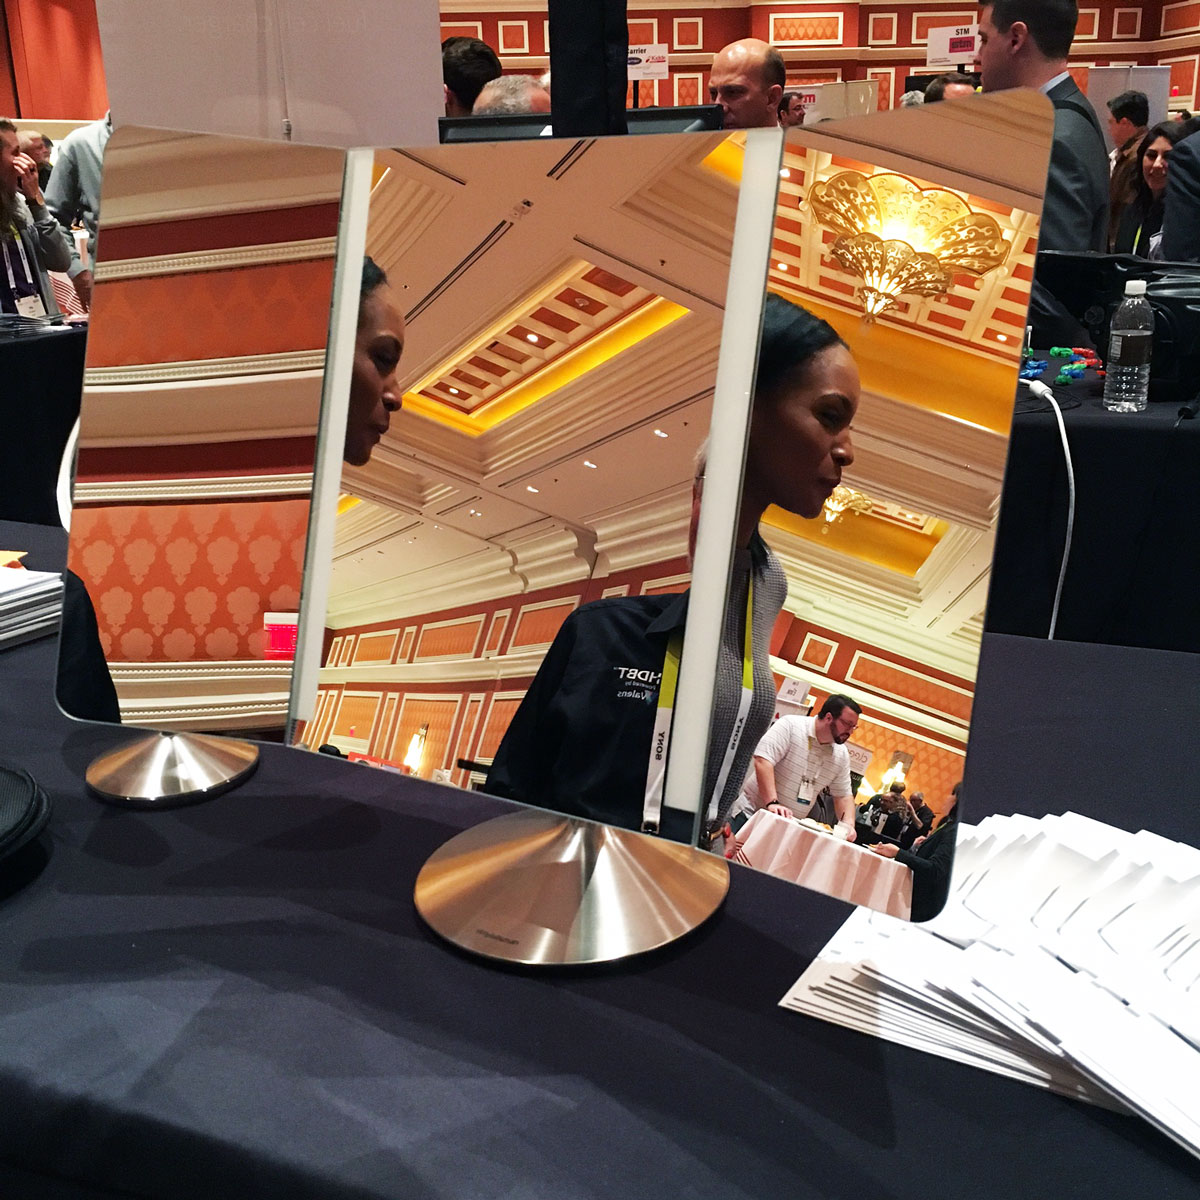 Wide-View Sensor Mirror at CES